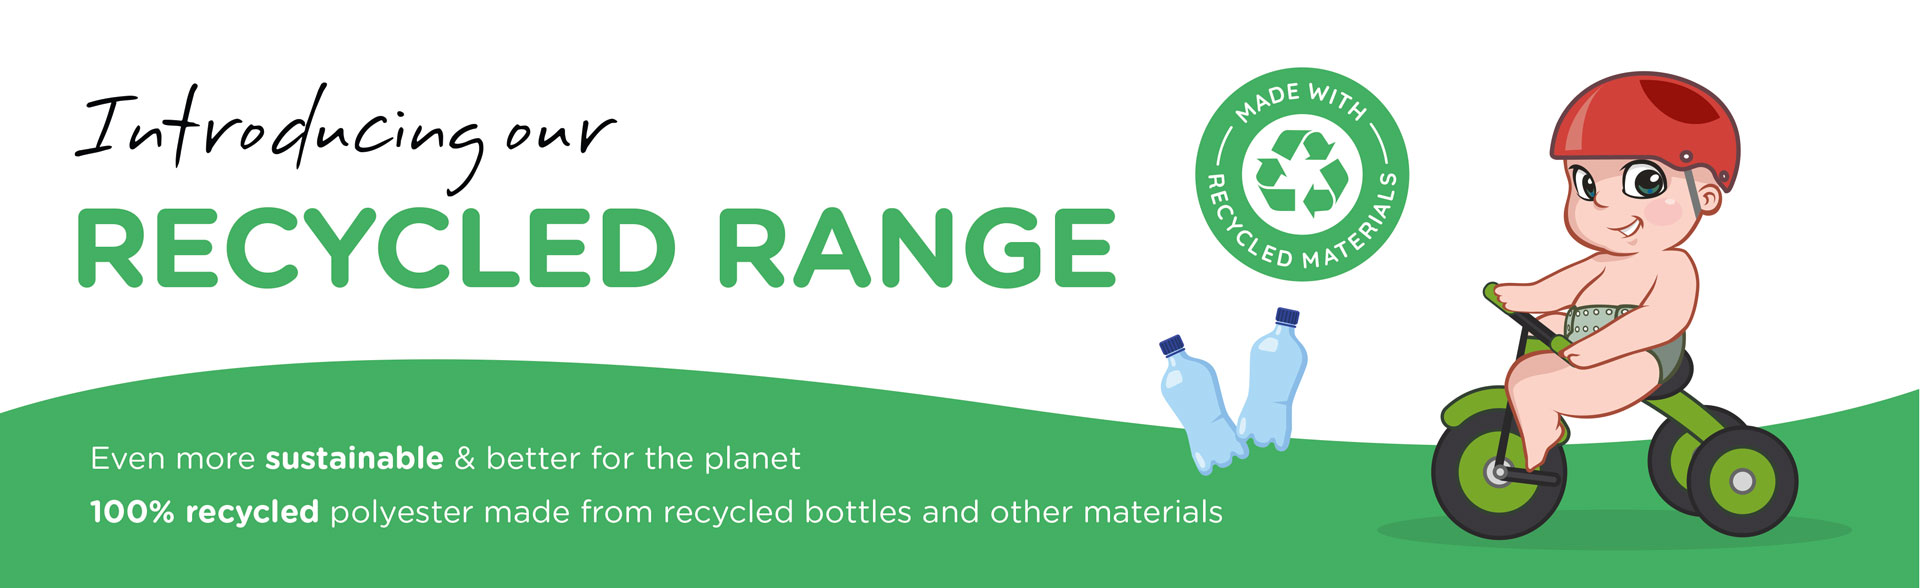 Pea Pods Recycled Range is even more sustainable and better for the plant.